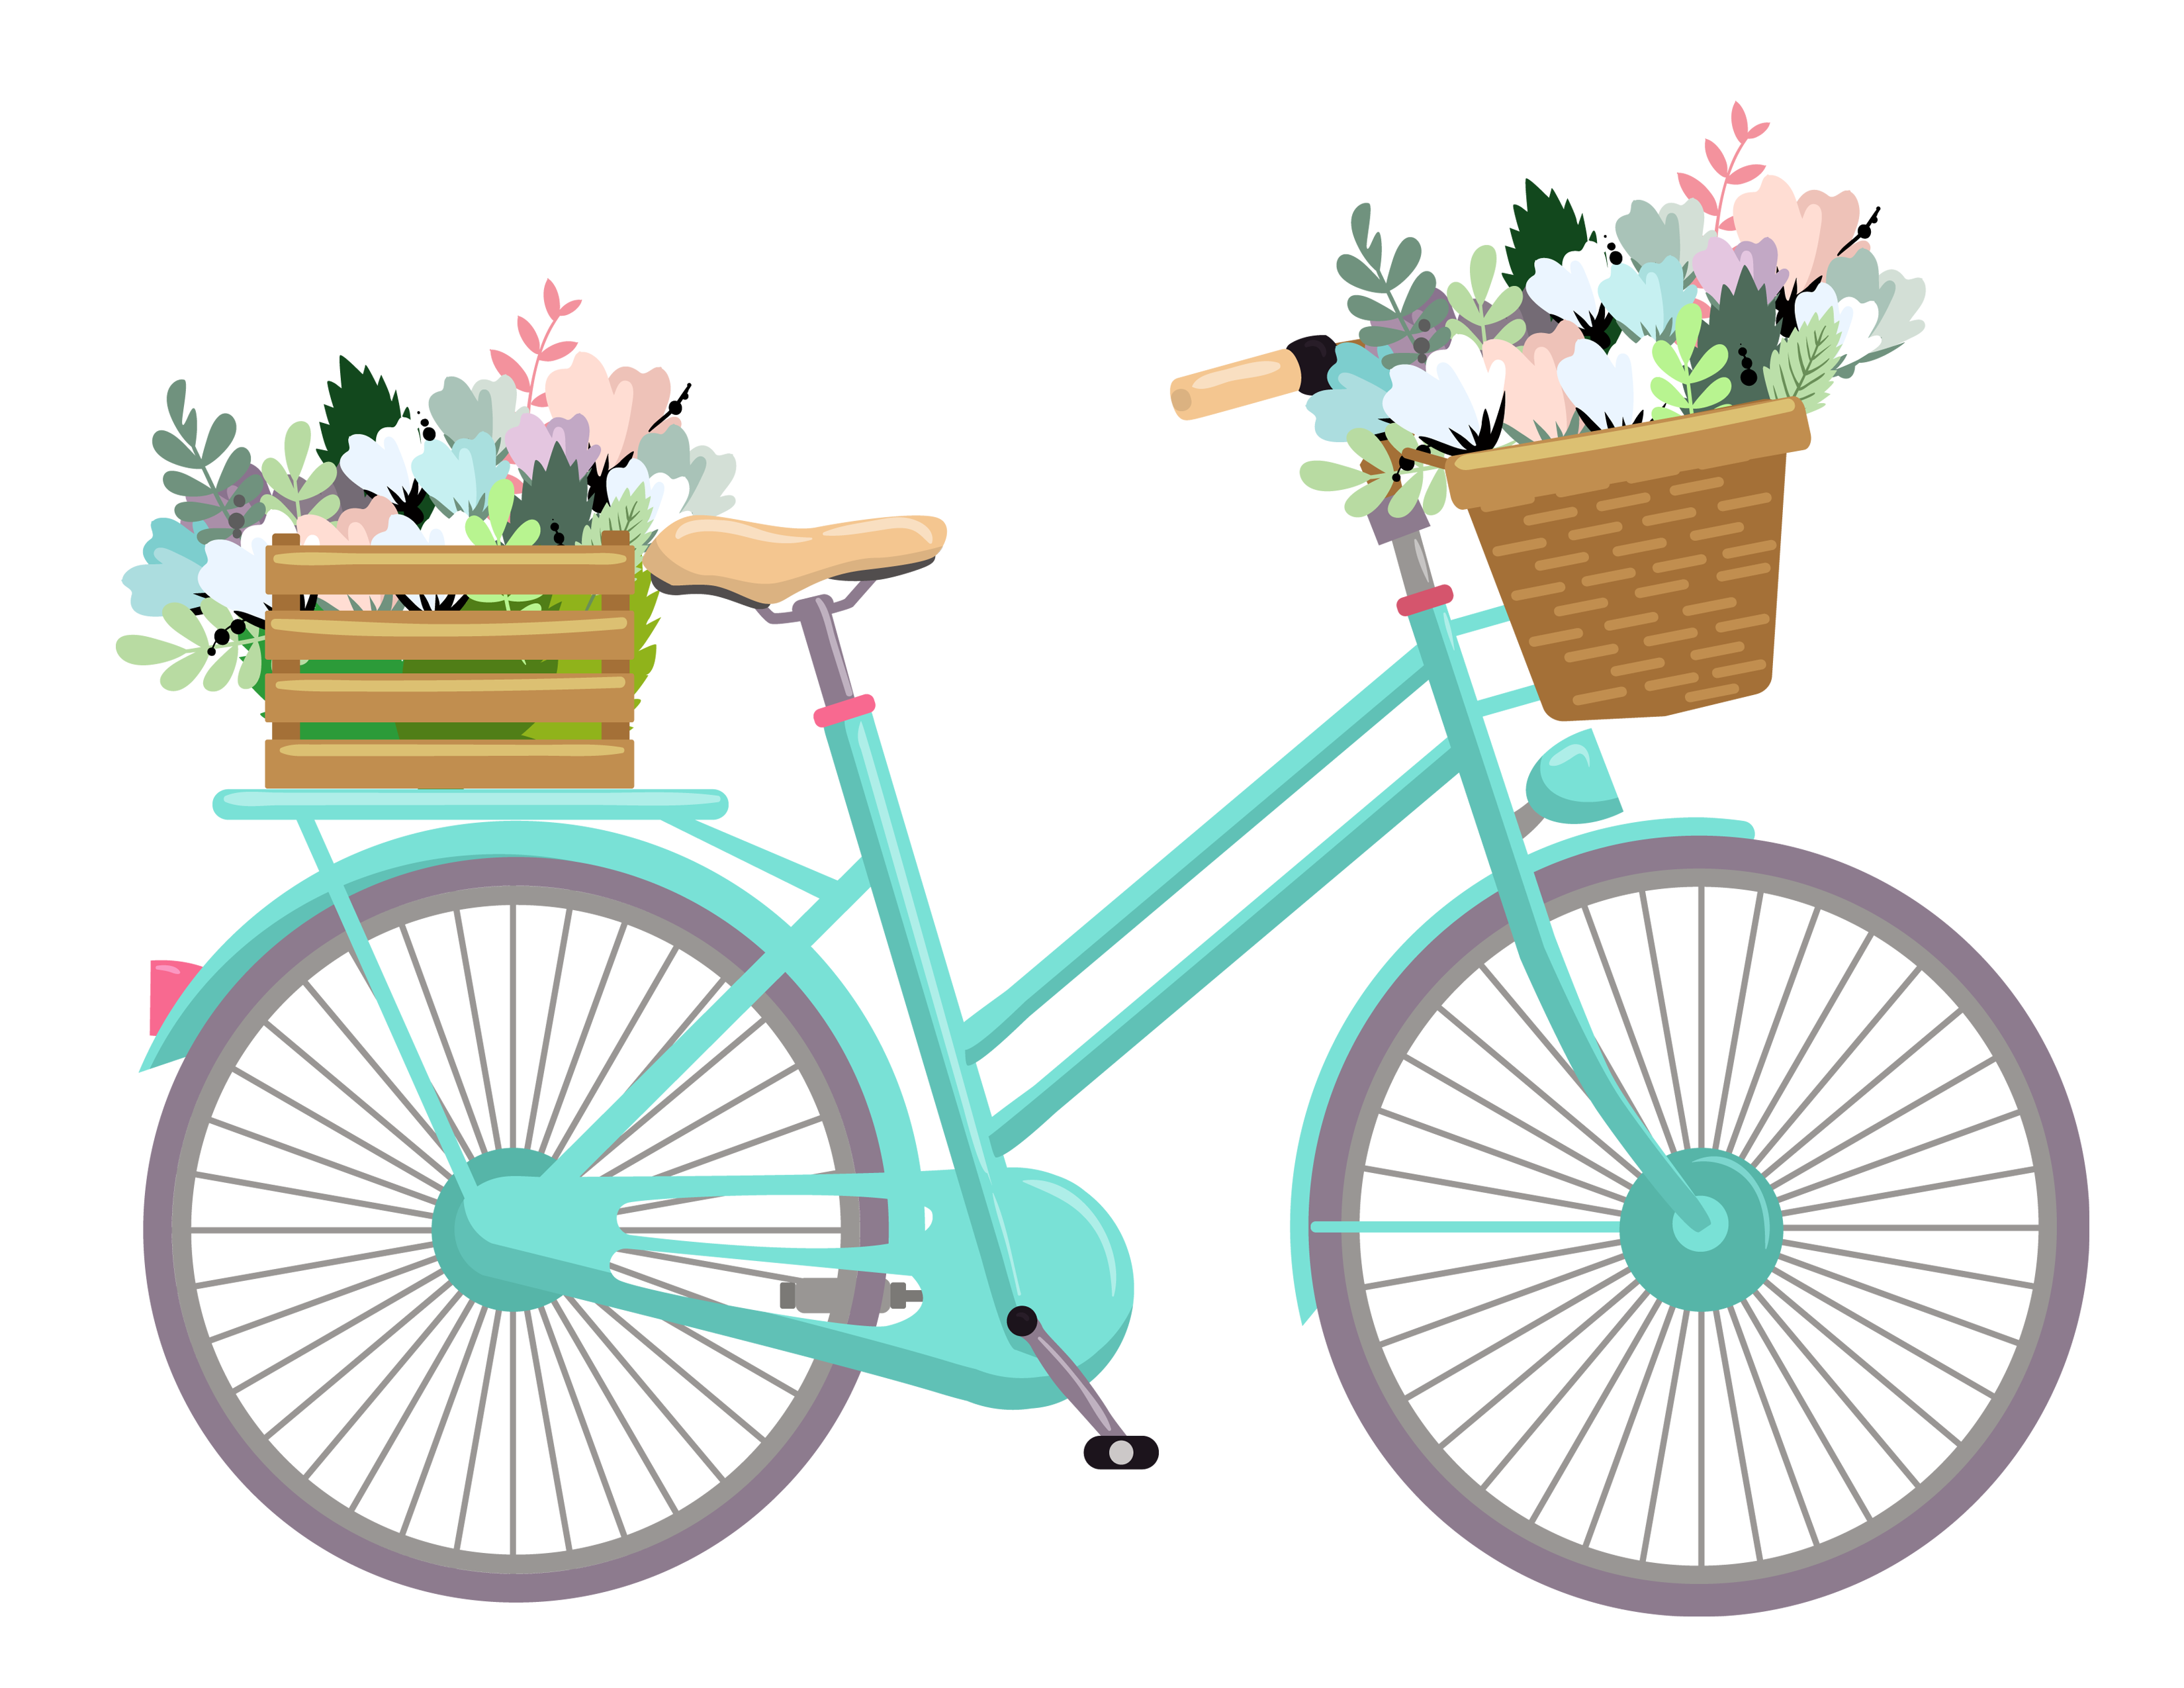 Bicycle baskets clipart png royalty free library Free Bicycle Clip Art, Download Free Clip Art, Free Clip Art on ... png royalty free library